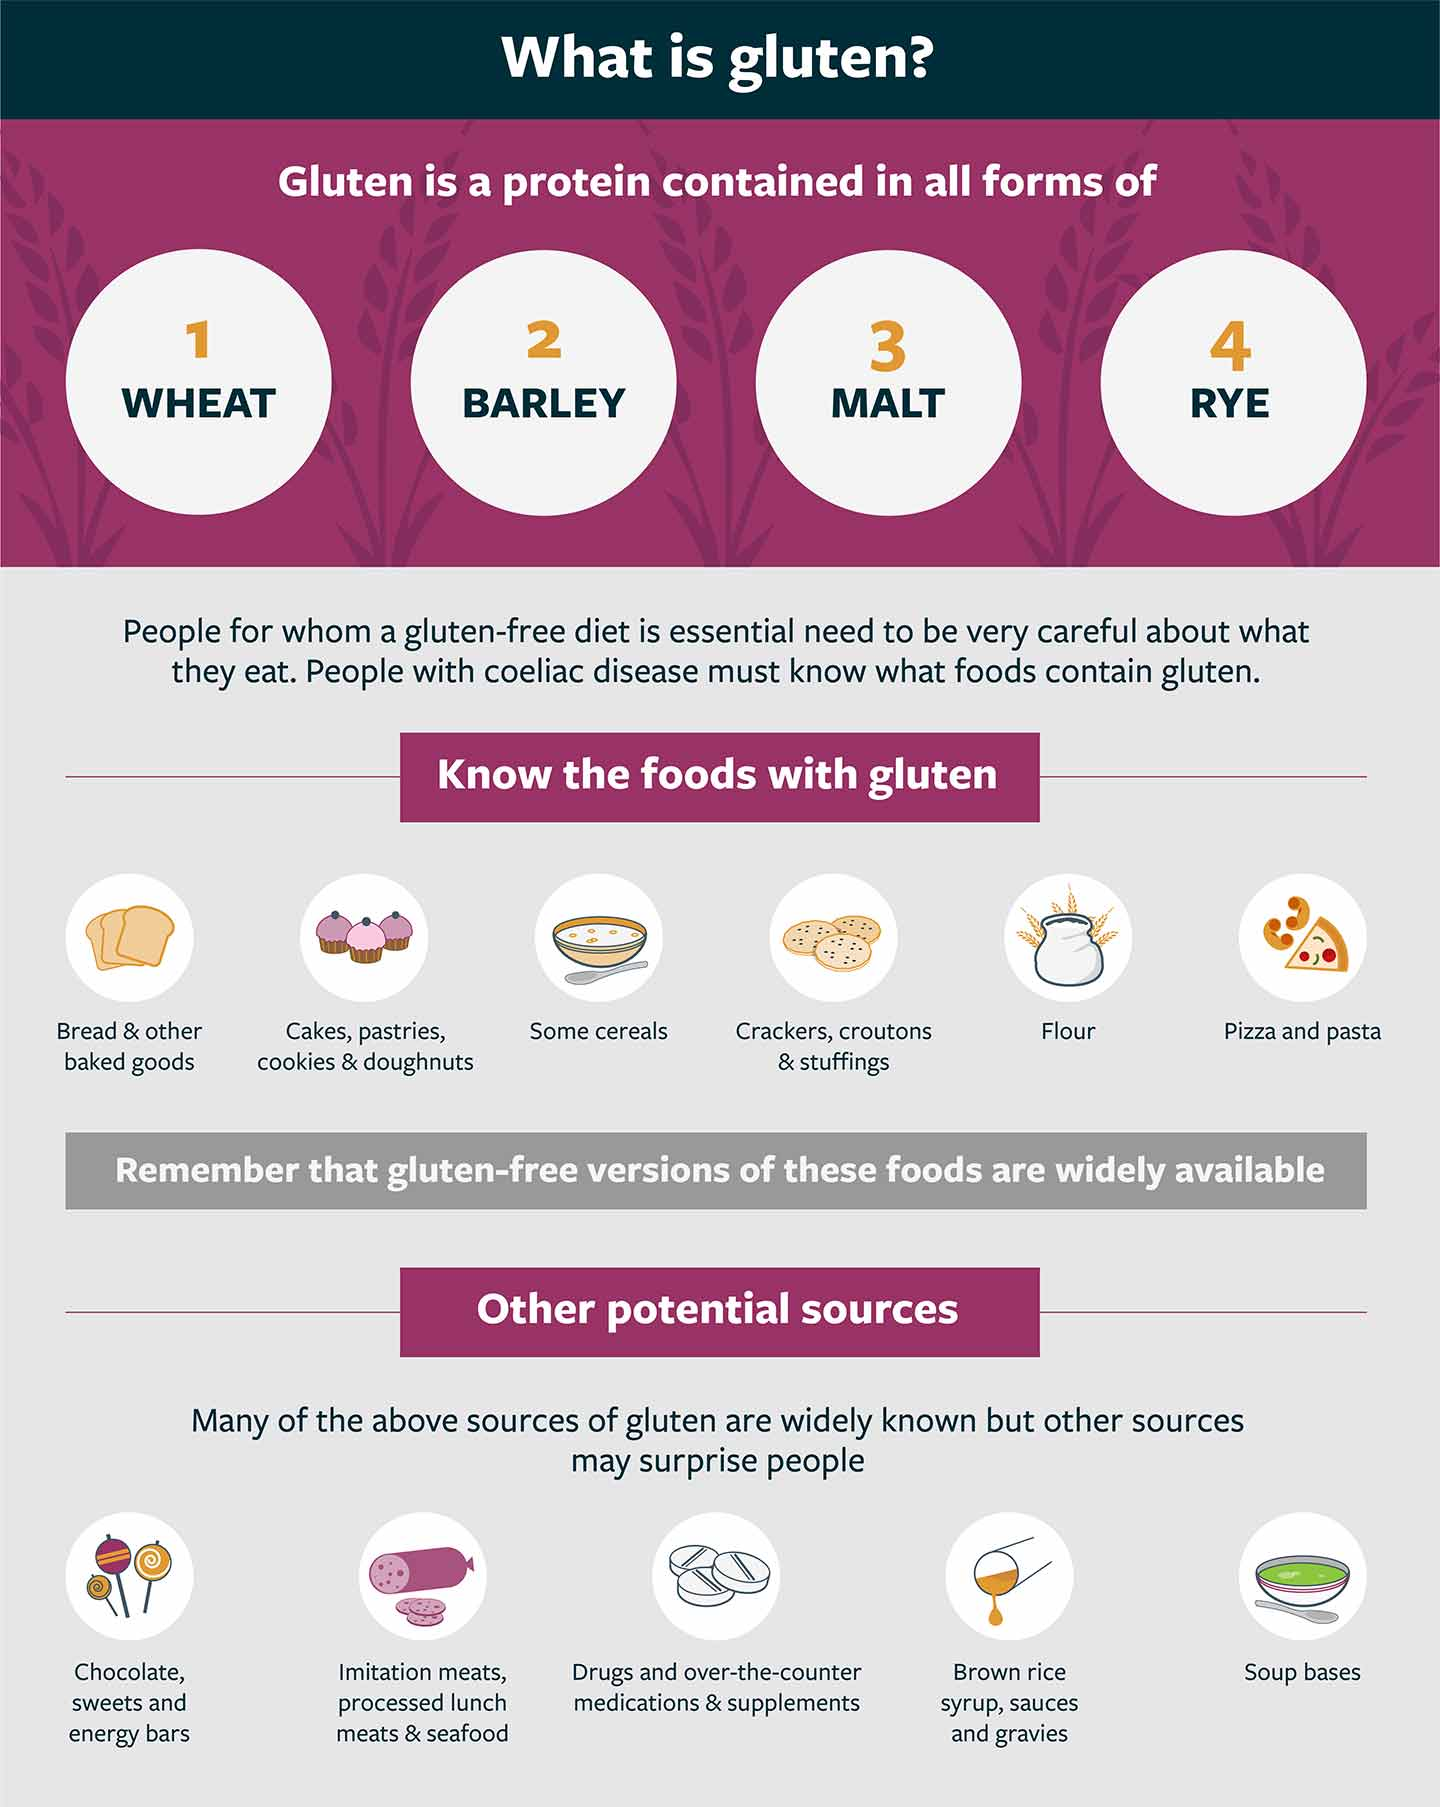 Information on foods containing gluten